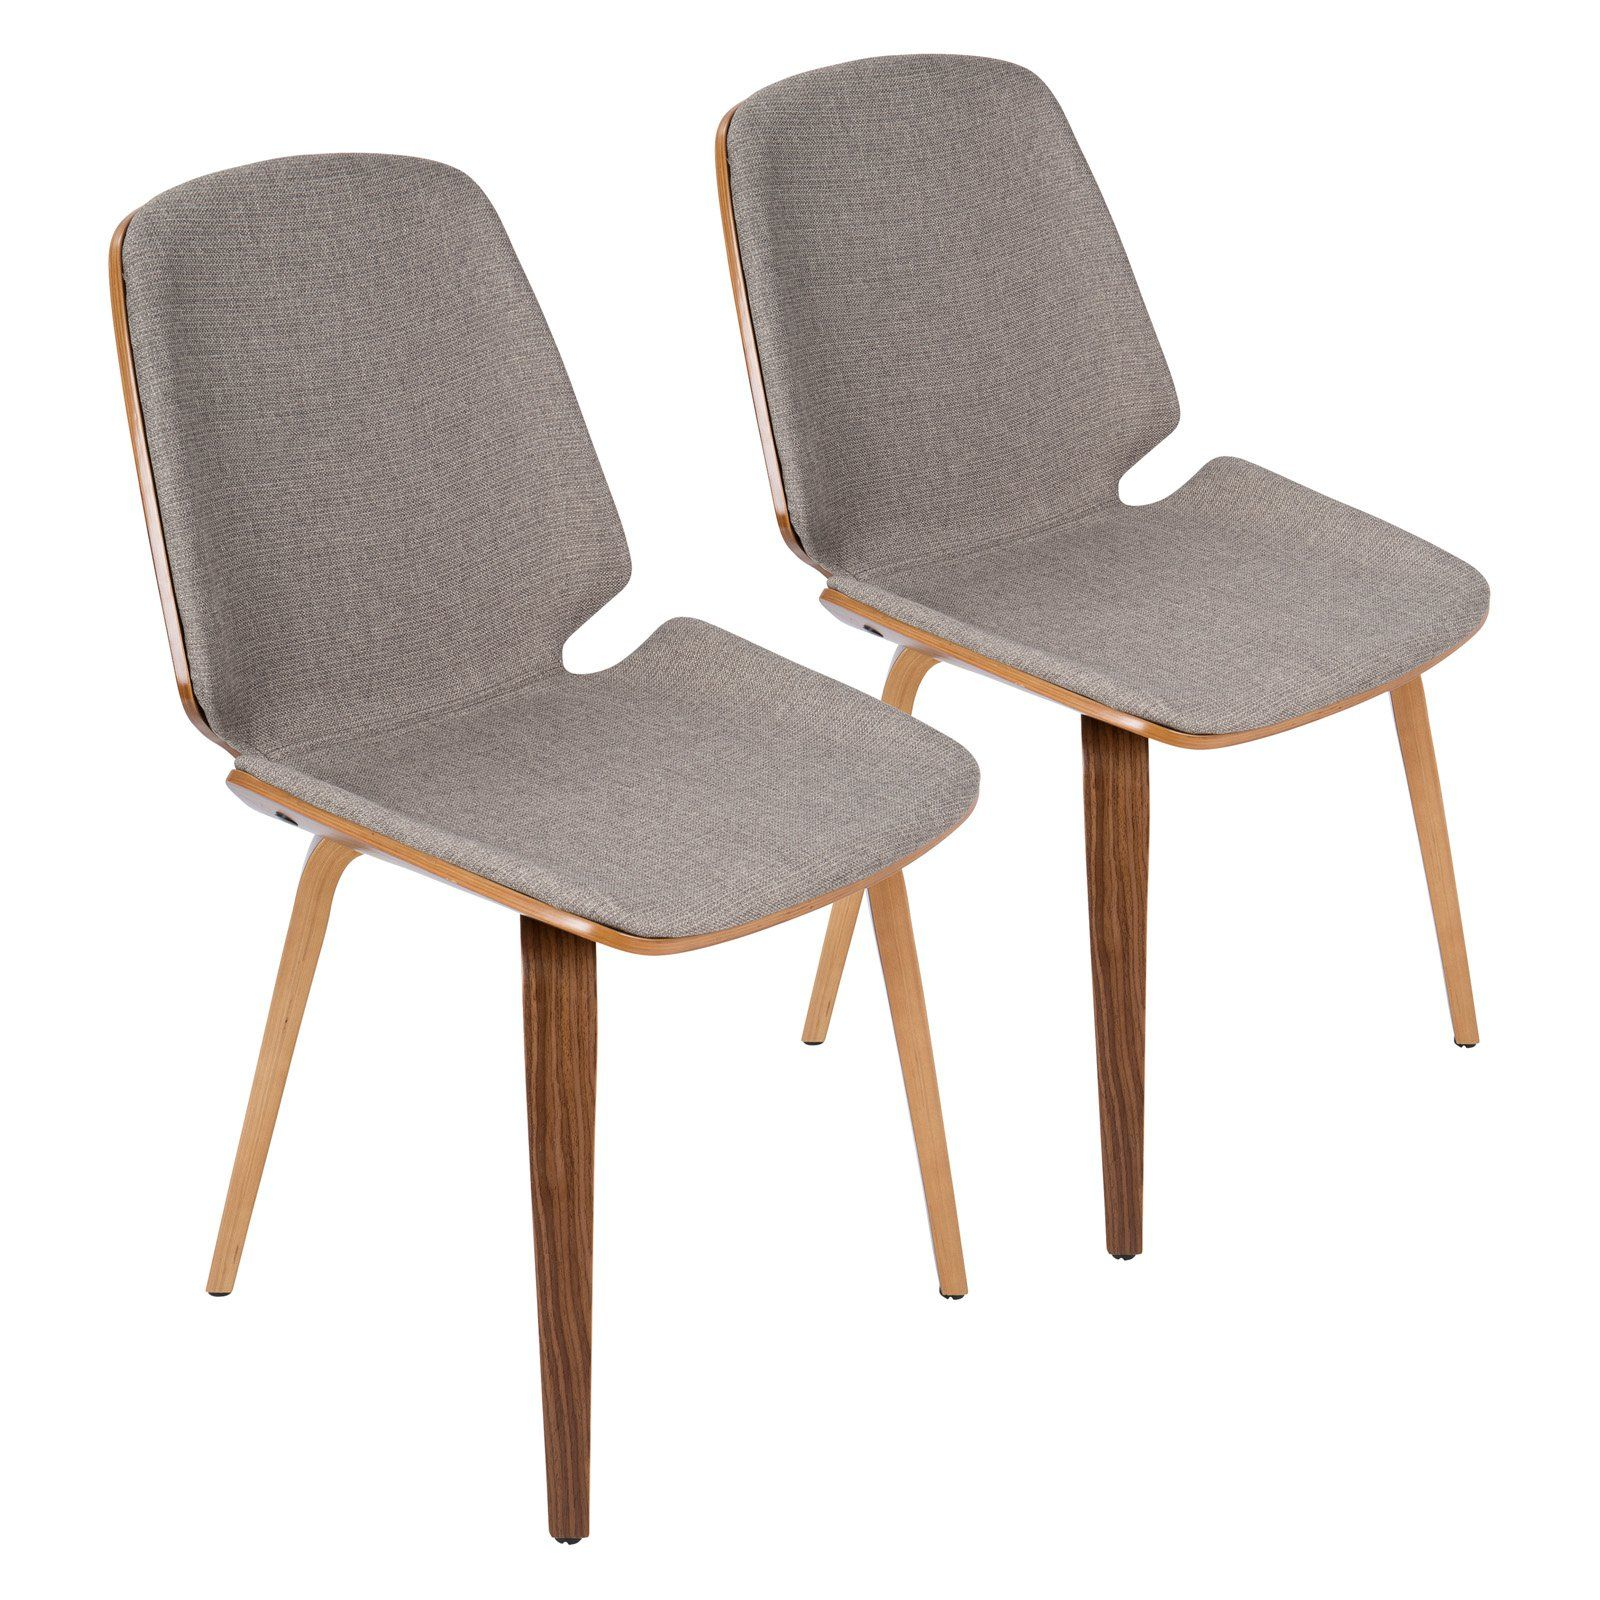 Lumisource Serena Mid-Century Modern Dining Chairs - Set of 2 - CH-SER  sc 1 st  Pinterest & Lumisource Serena Mid-Century Modern Dining Chairs - Set of 2 - CH ...